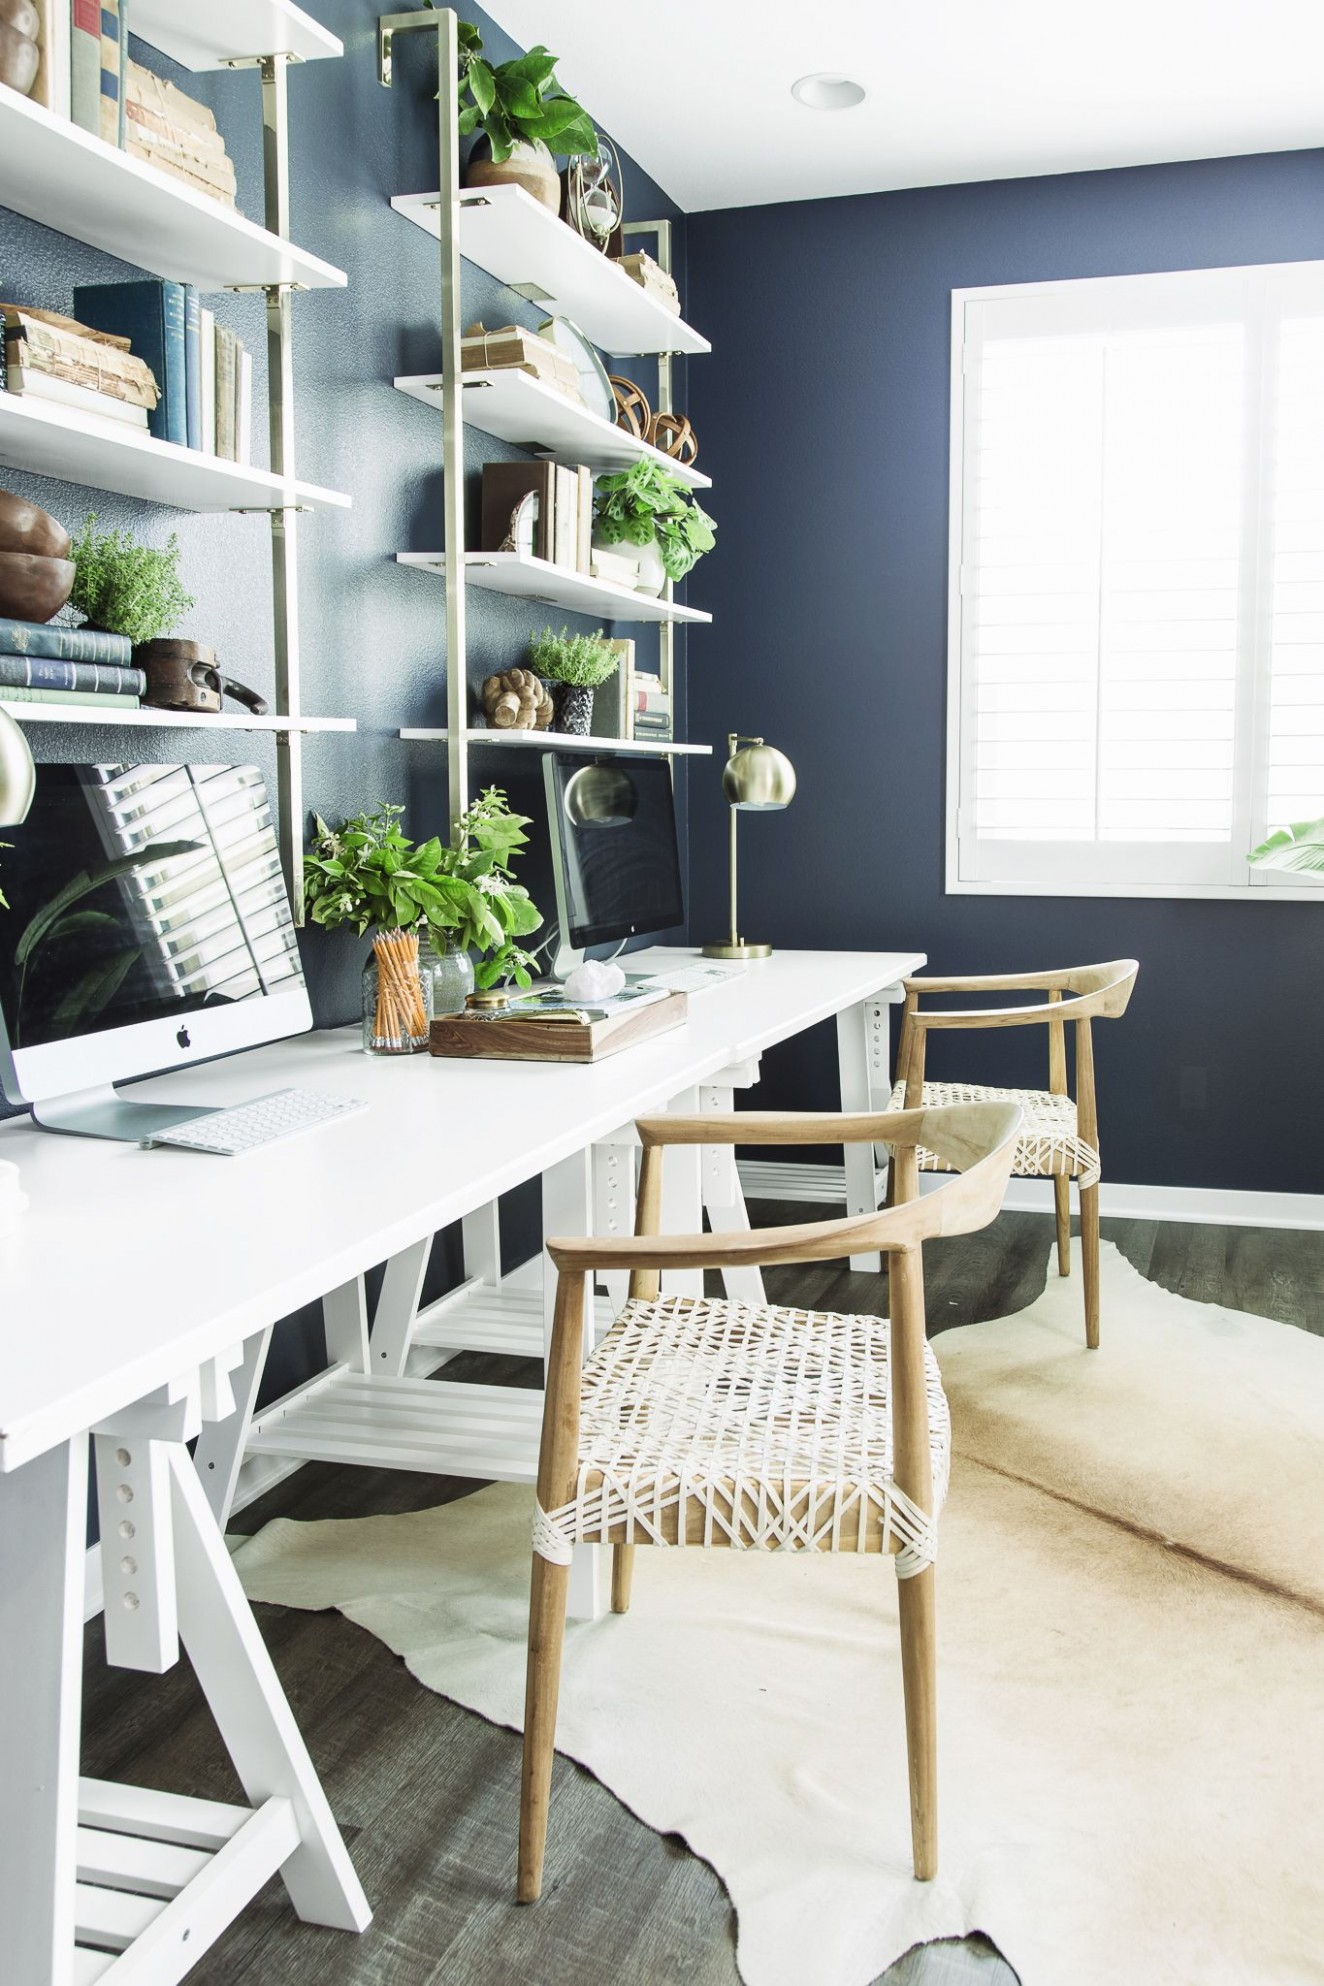 12 Best Home Office Ideas - How to Decorate a Home Office - Home Office Ideas Carpet